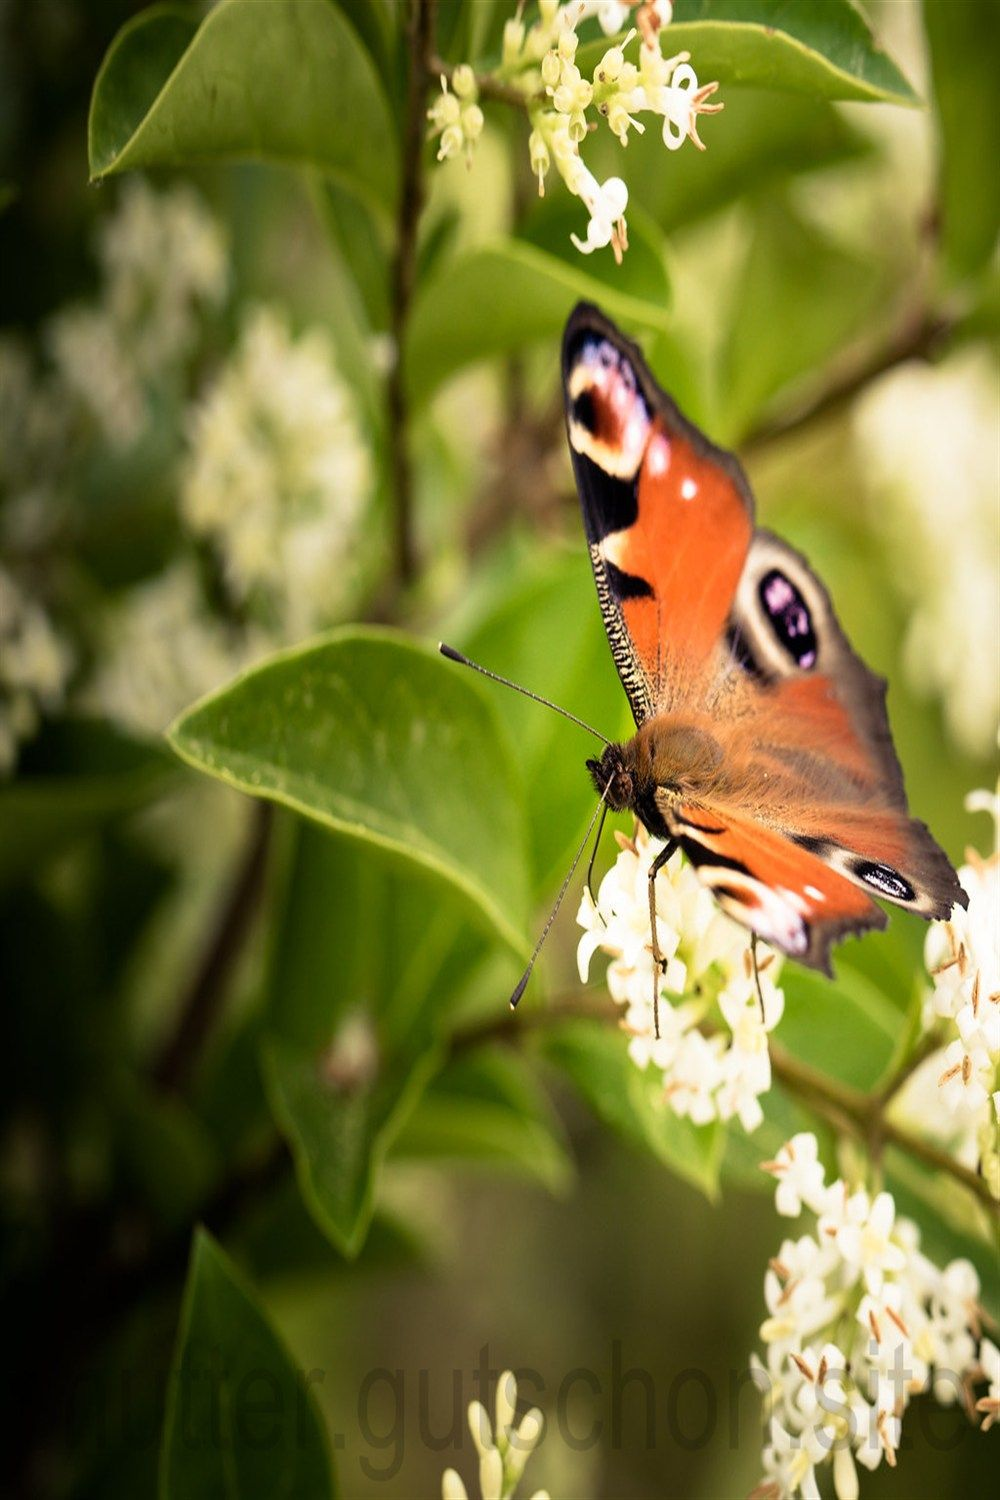 lebensmittel i am anfang Life, Butterfly, Insects